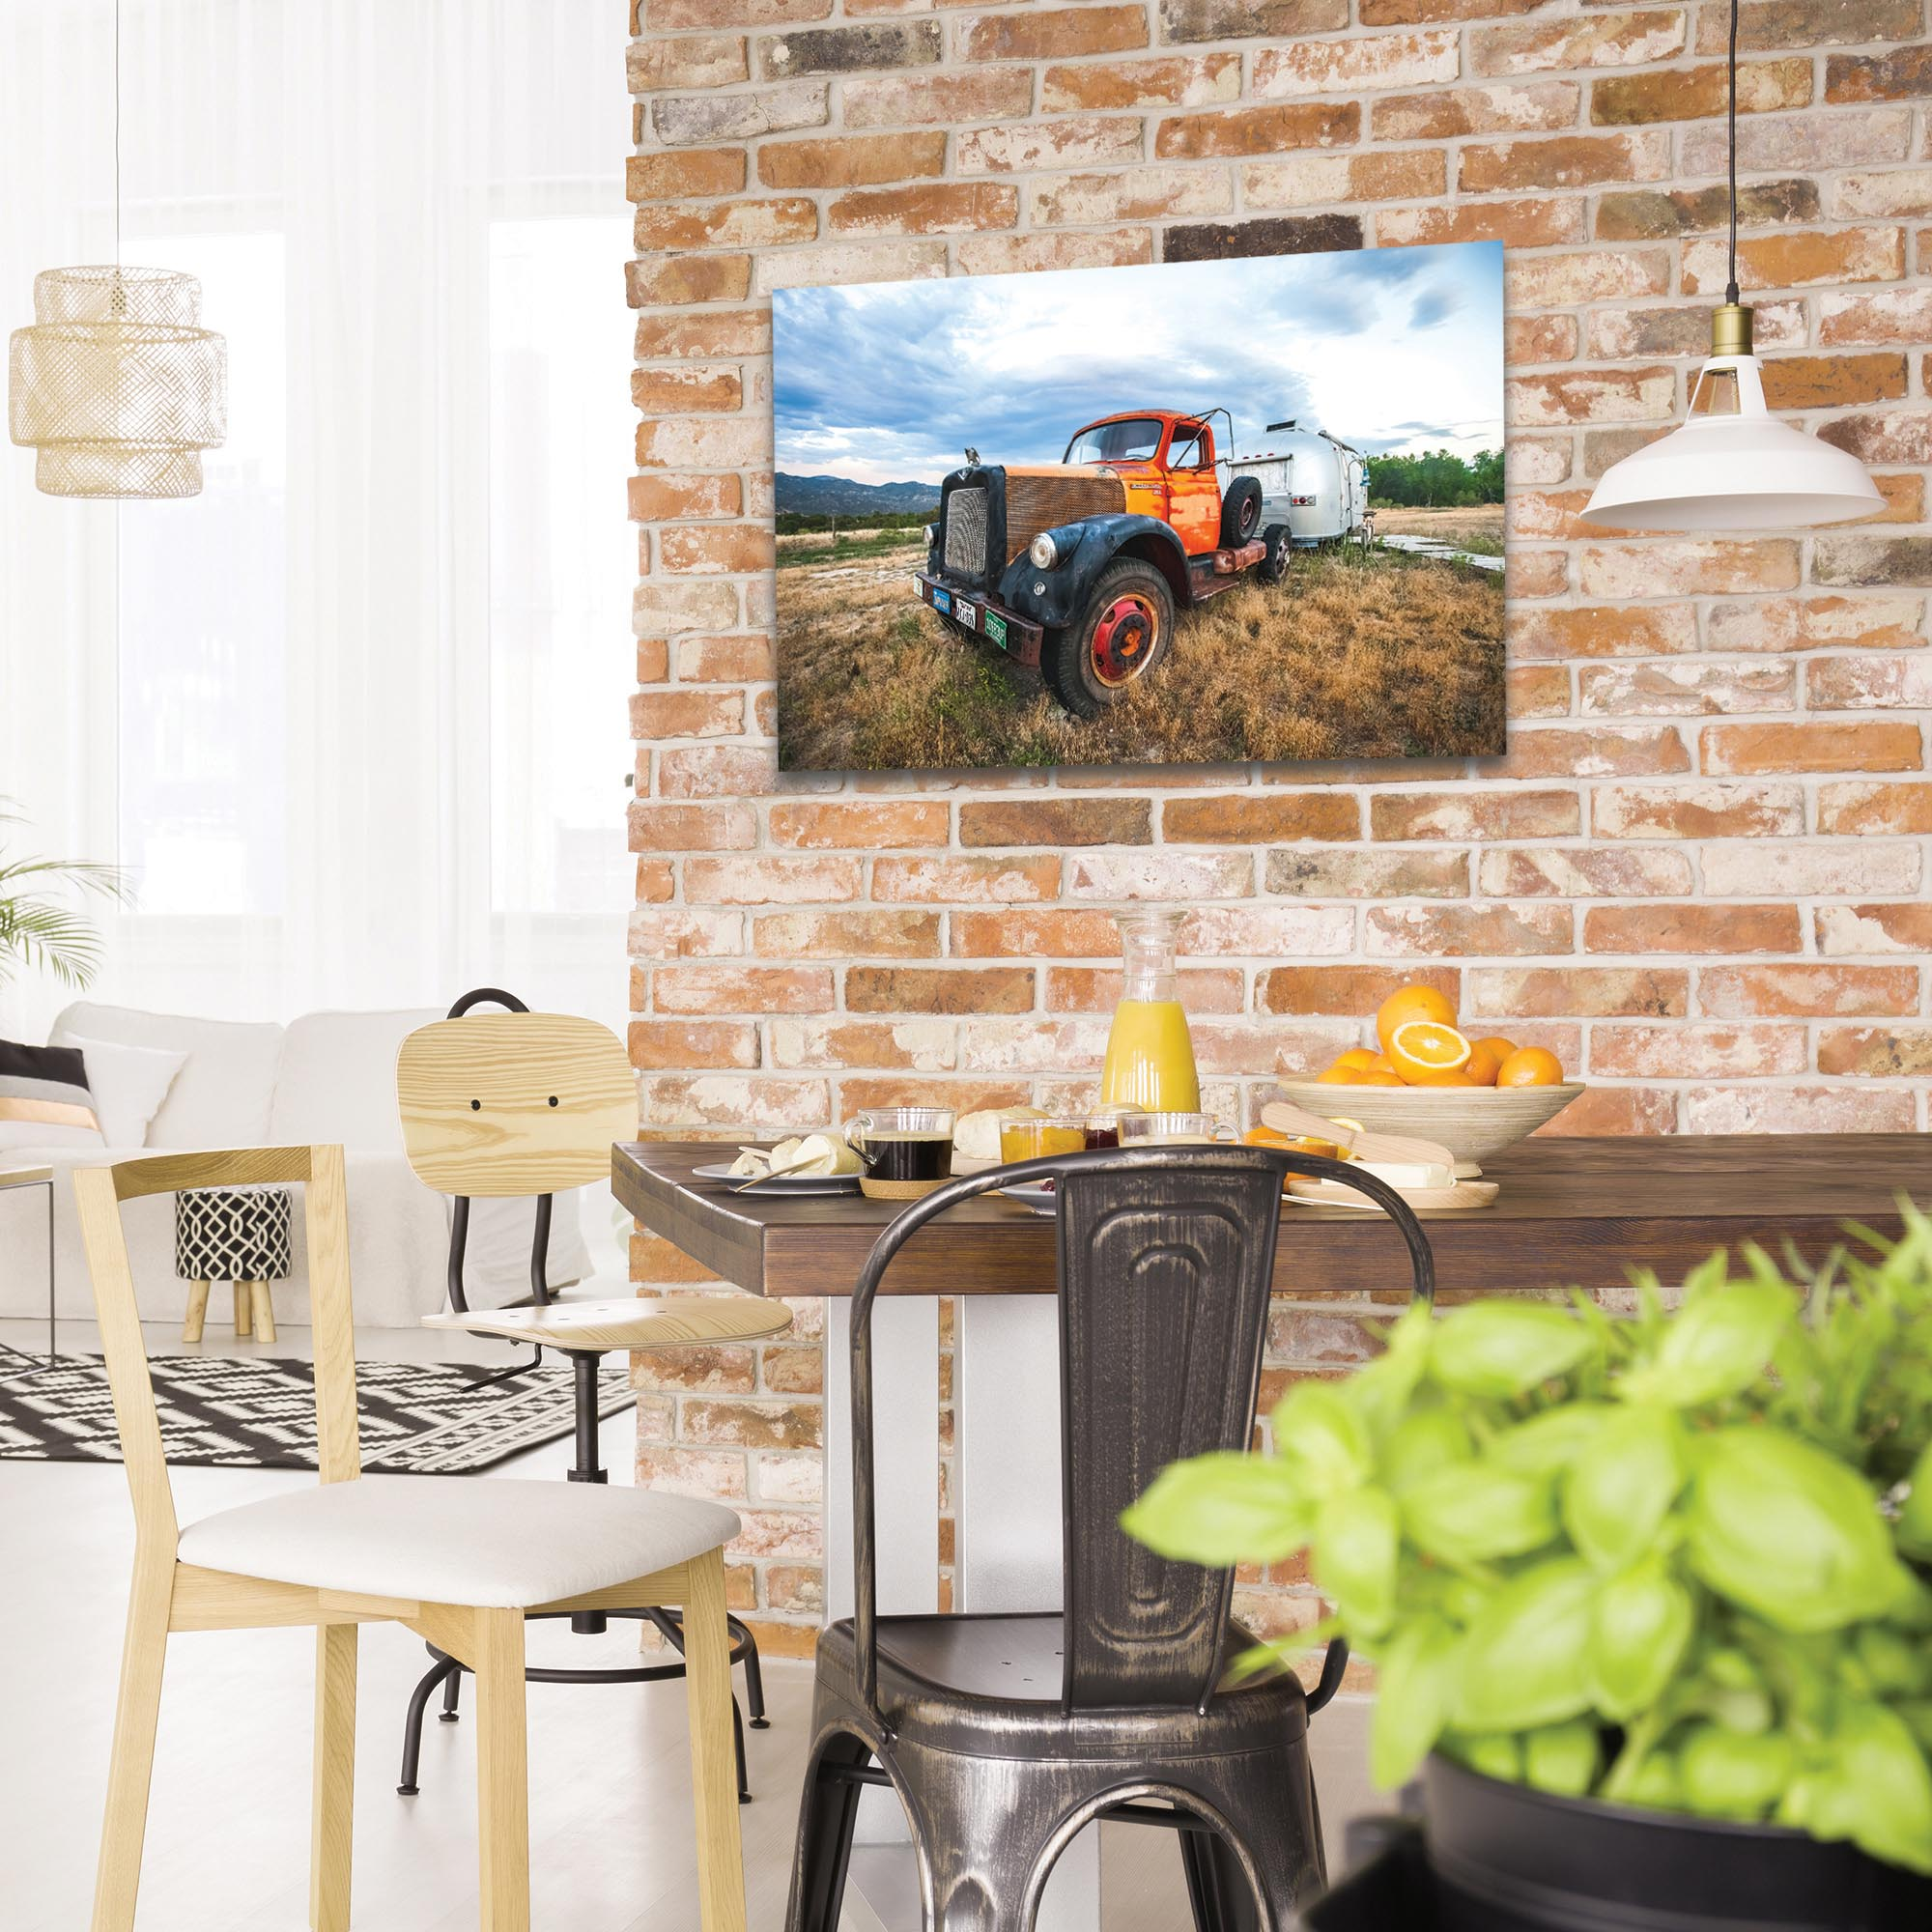 Americana Wall Art 'The Workhorse' - Classic Truck Decor on Metal or Plexiglass - Lifestyle View